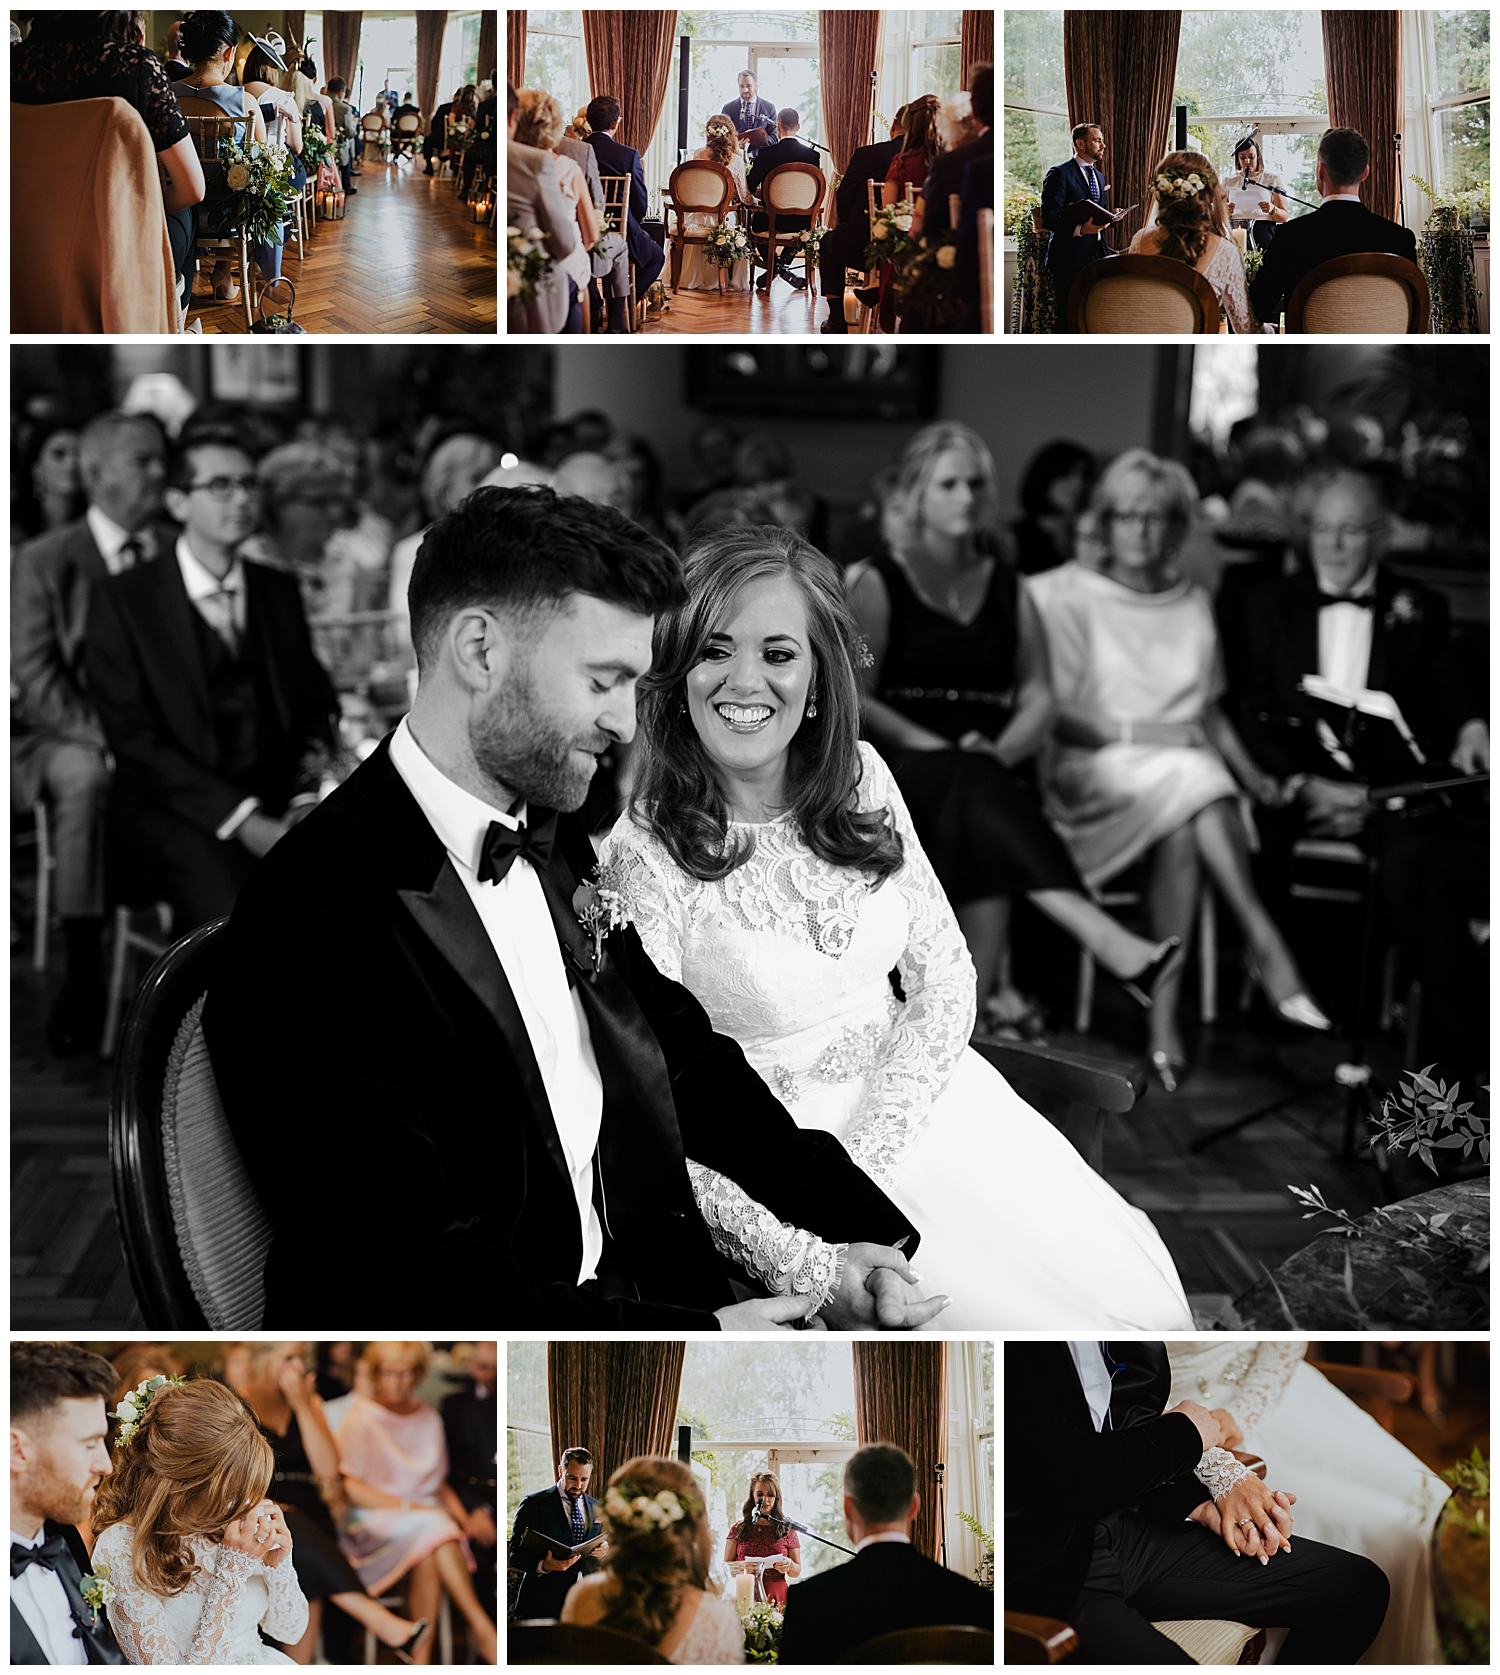 a&c_tinakilly_black_tie_wedding_photographer_livia_figueiredo_90.jpg